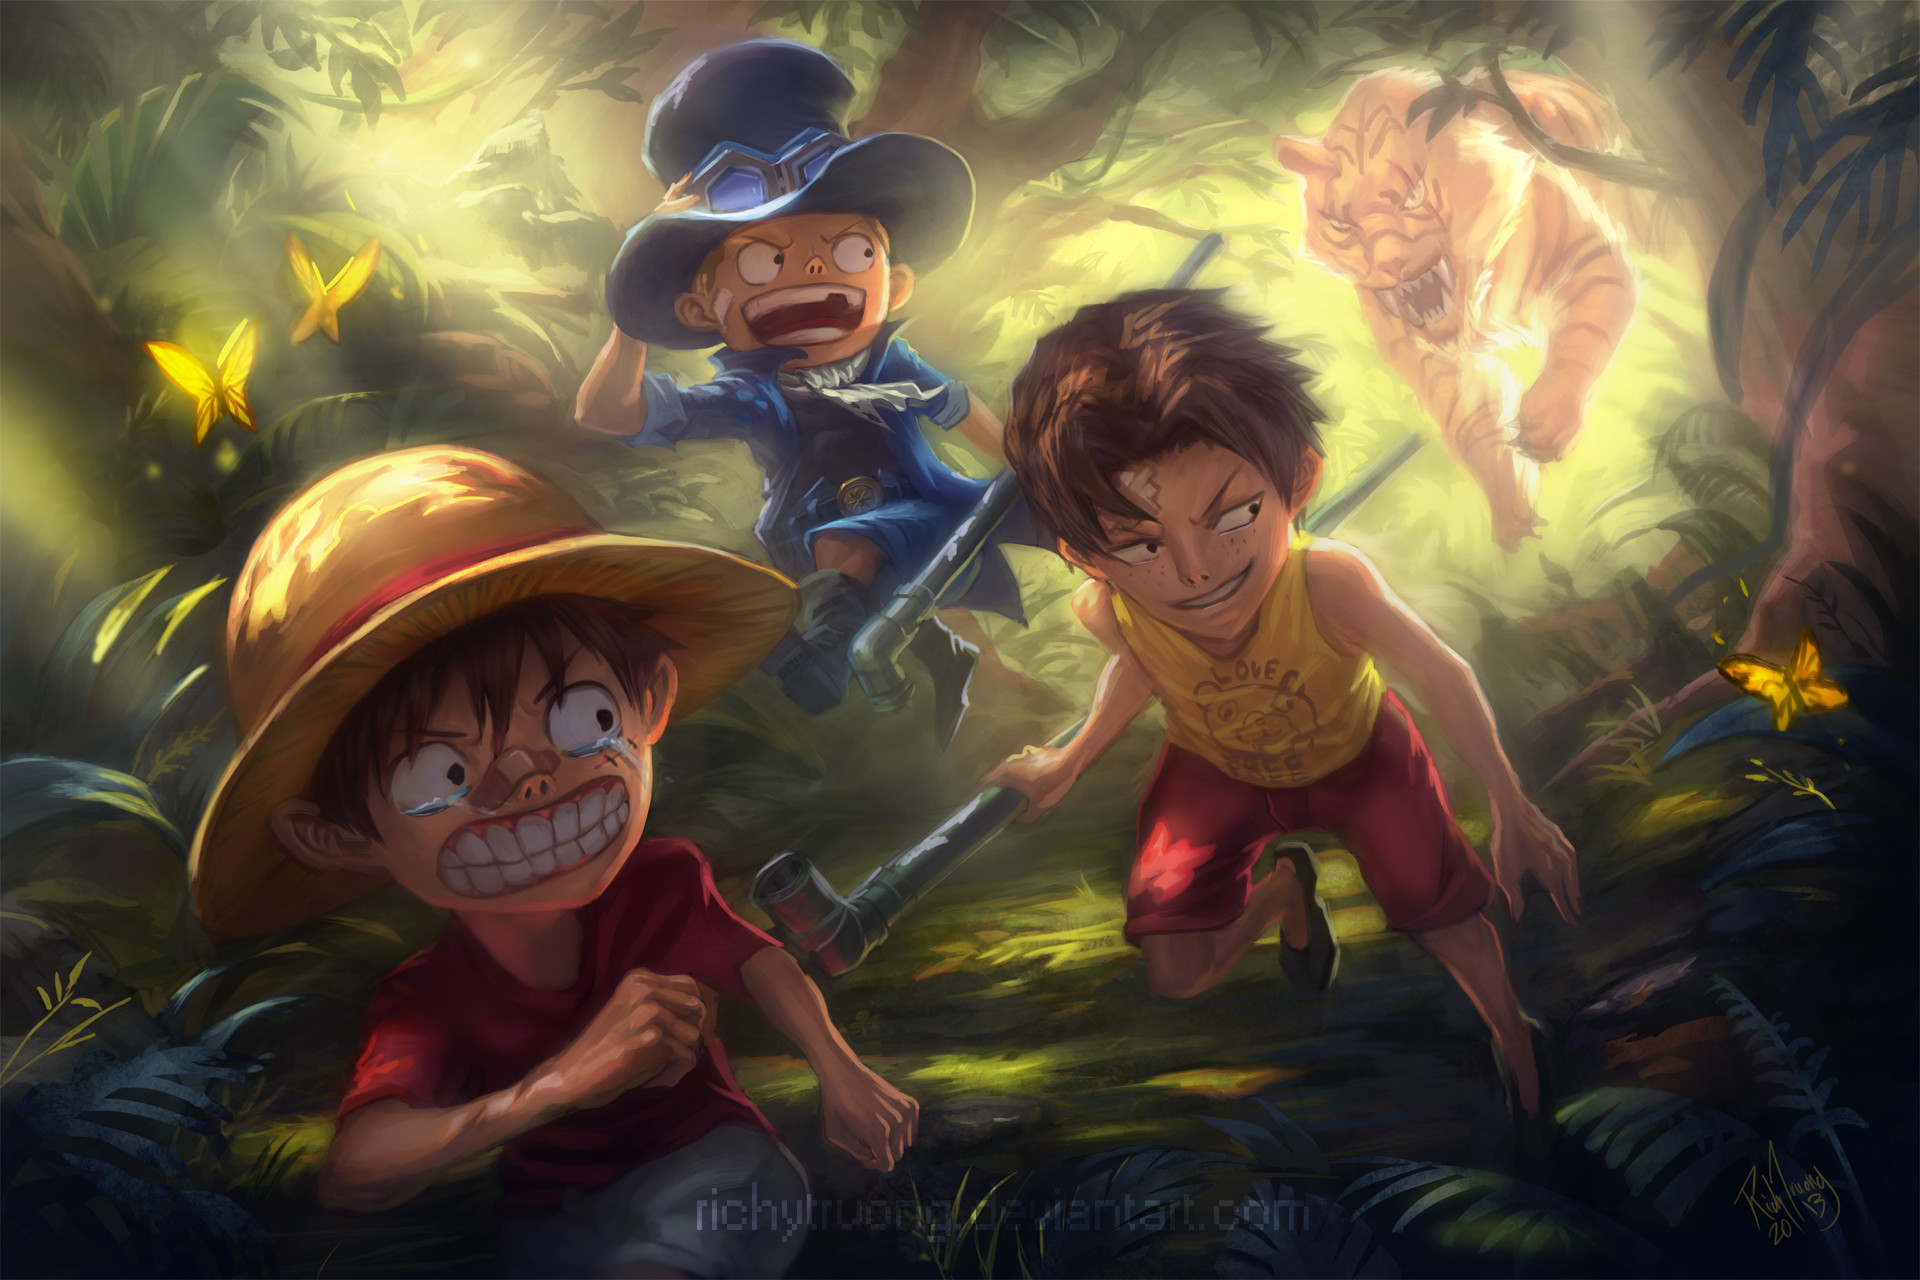 Ace And Luffy 248570 Hd Wallpaper Backgrounds Download